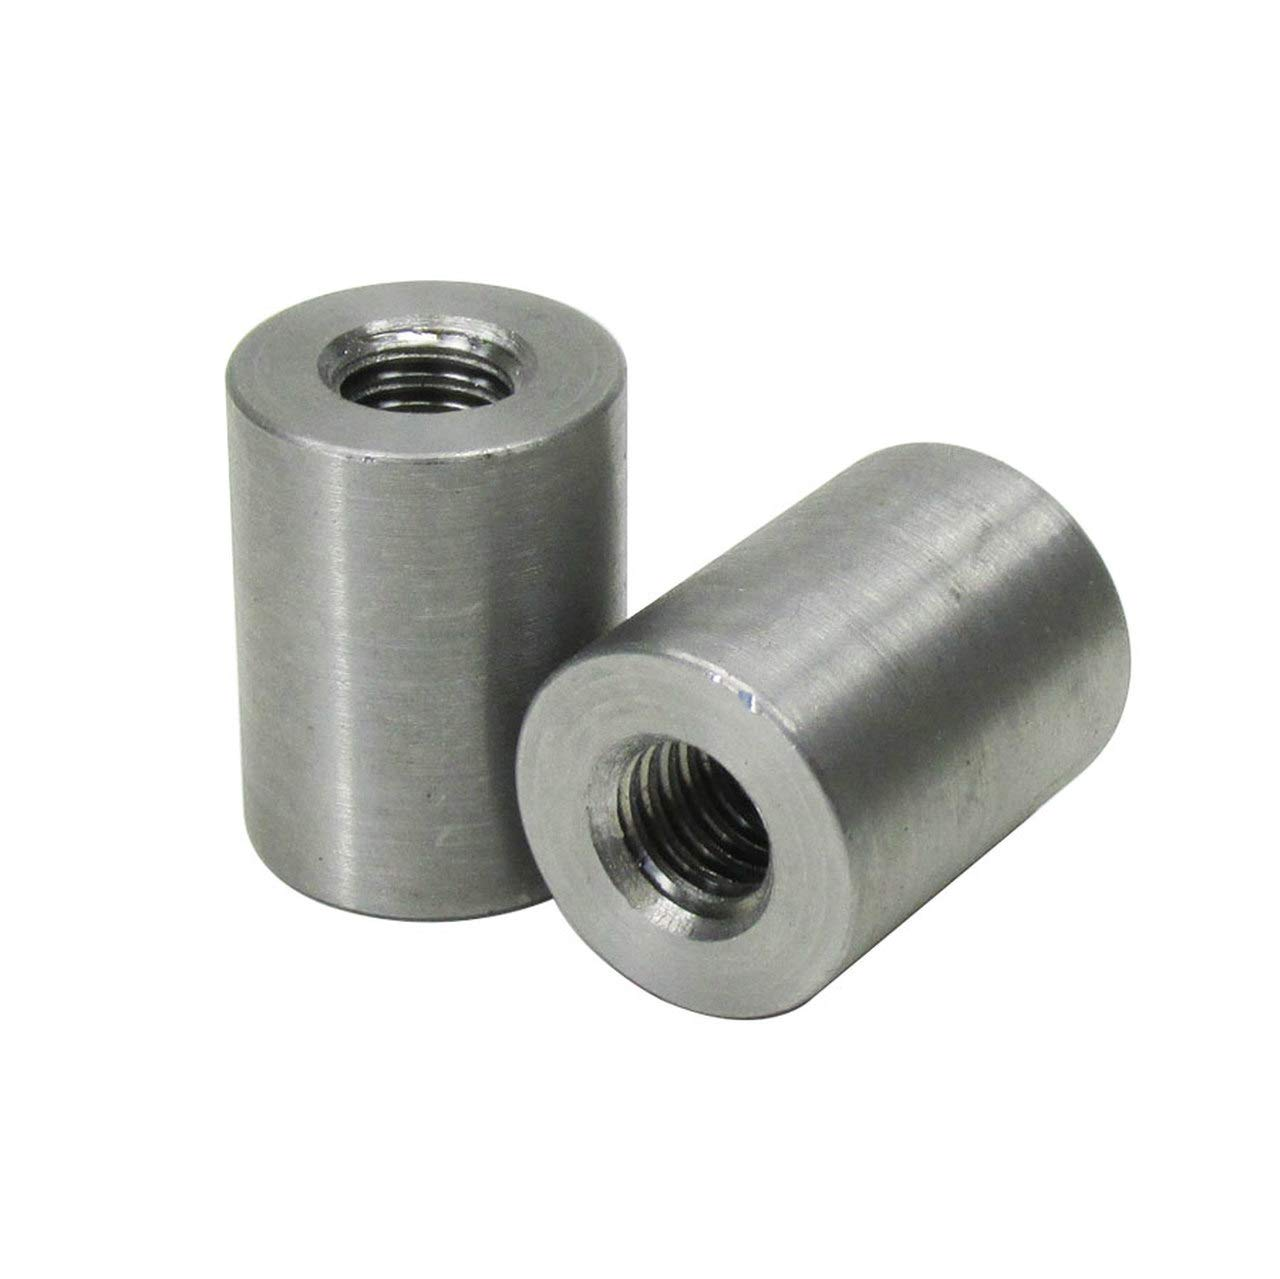 Fabrication Parts DIY Motorcycle Chopper Bobber Cafe Racer Builder Billet Proof Designs 22MM/_BNG/_ST QUANTITY OF 2 5//16-18 SHORT Coped Steel Bungs MADE IN THE USA Fits 1 to 1-1//4 Round Tubing